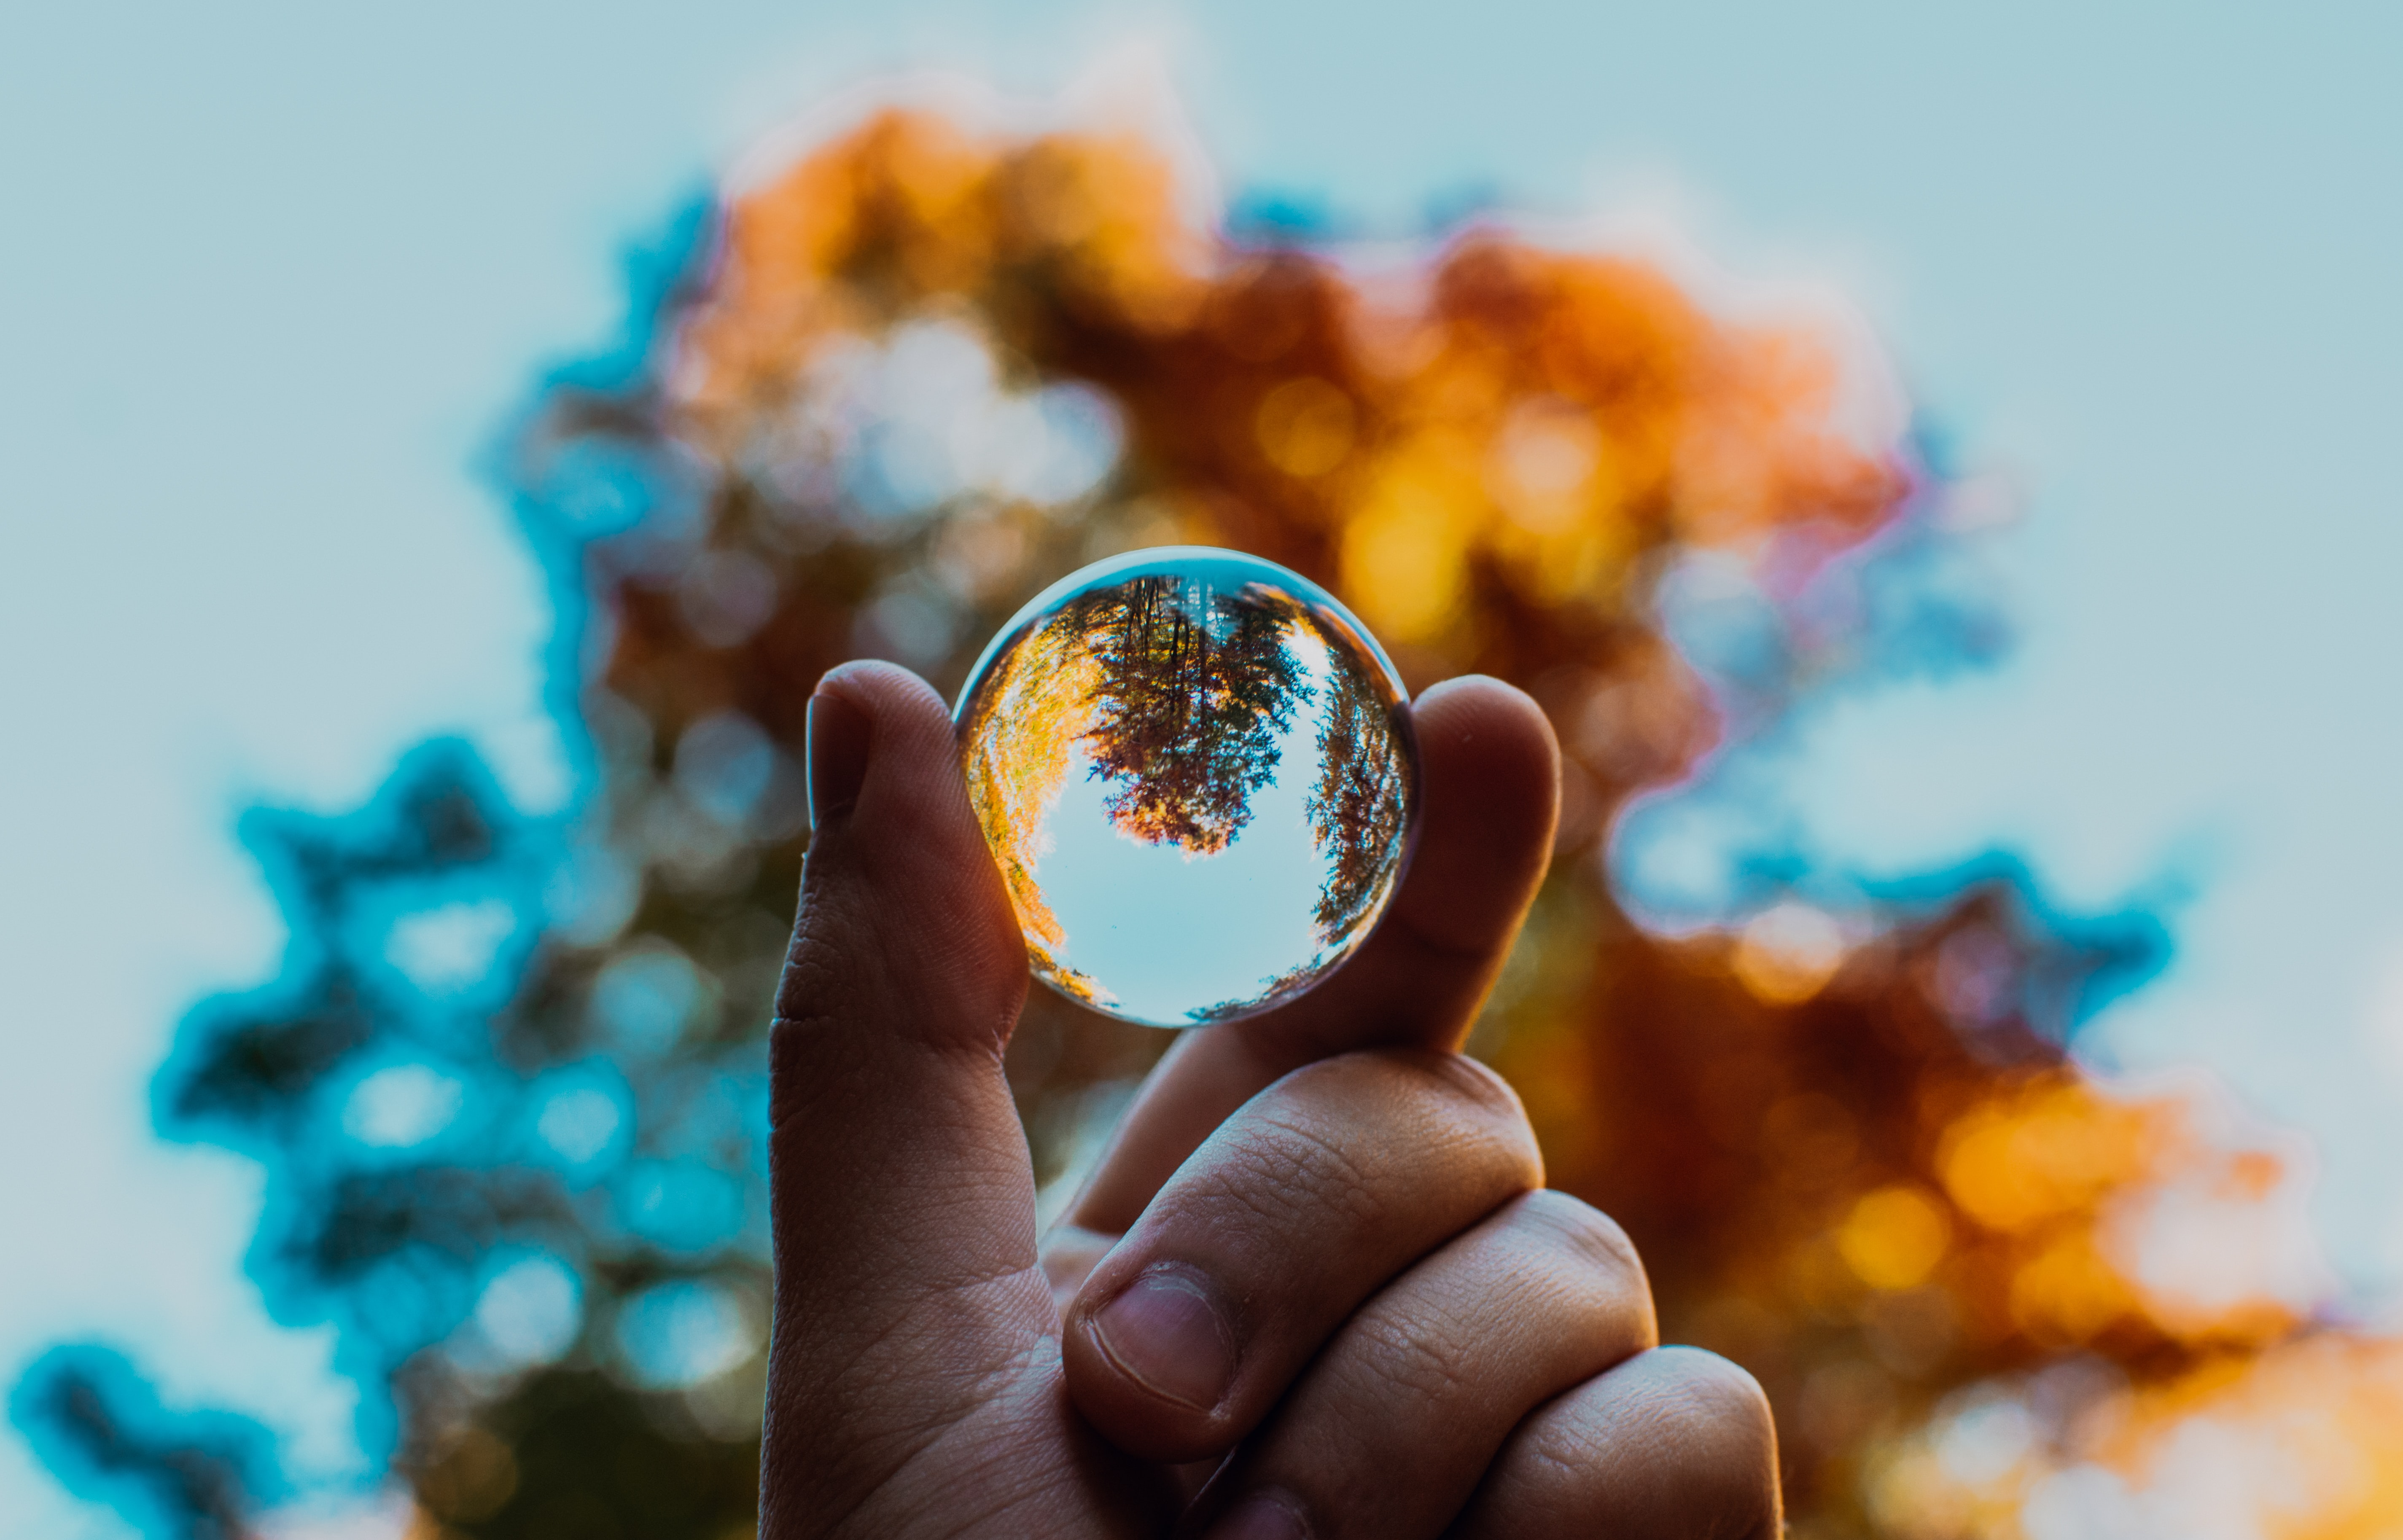 selective focus photography of person holding clear ball